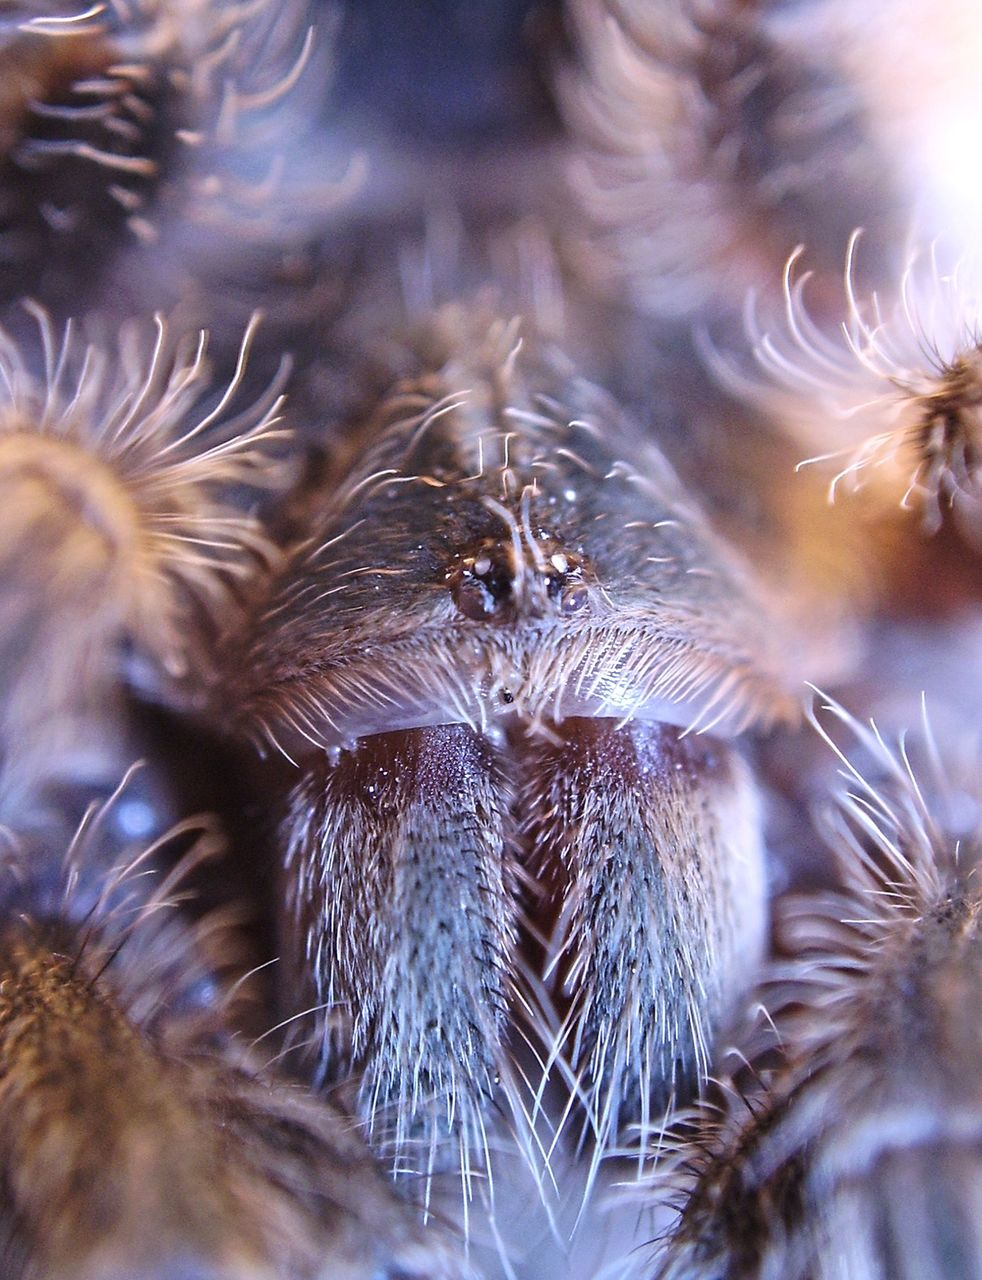 EXTREME CLOSE-UP OF SPIDER